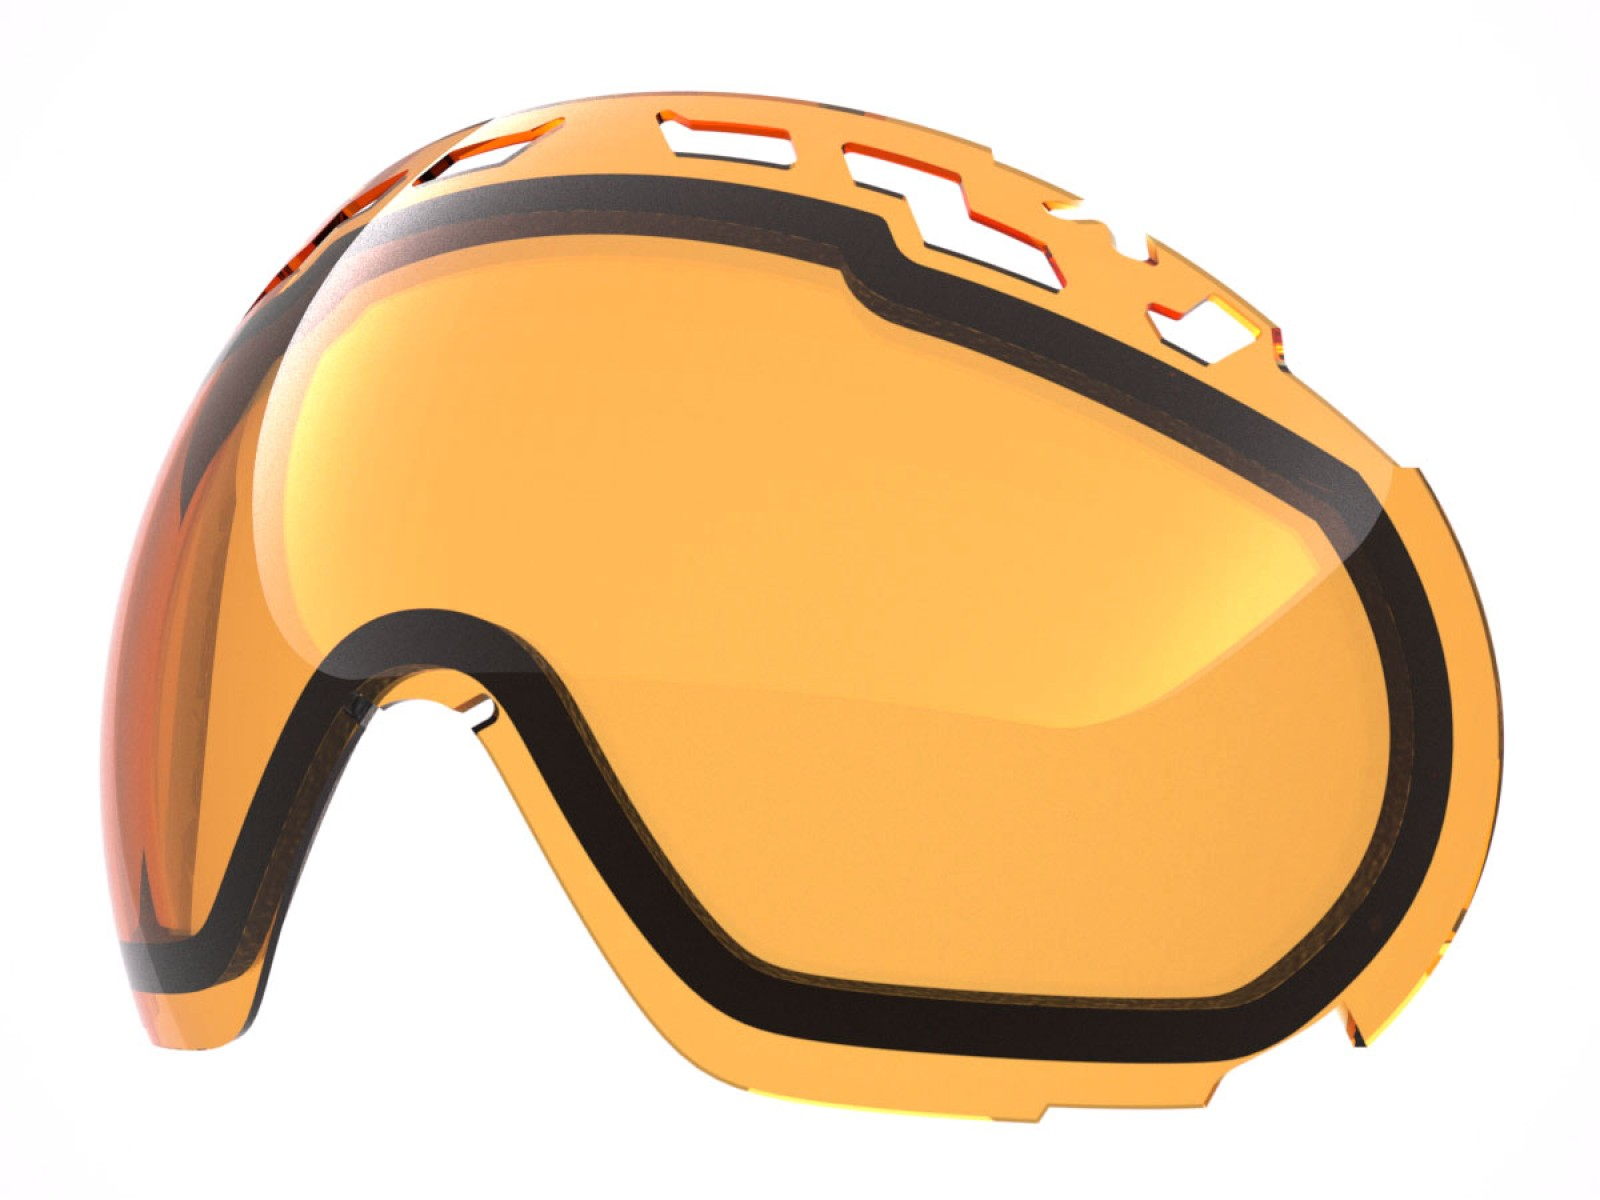 PERSIMMON LENS FOR EDGE GOGGLE